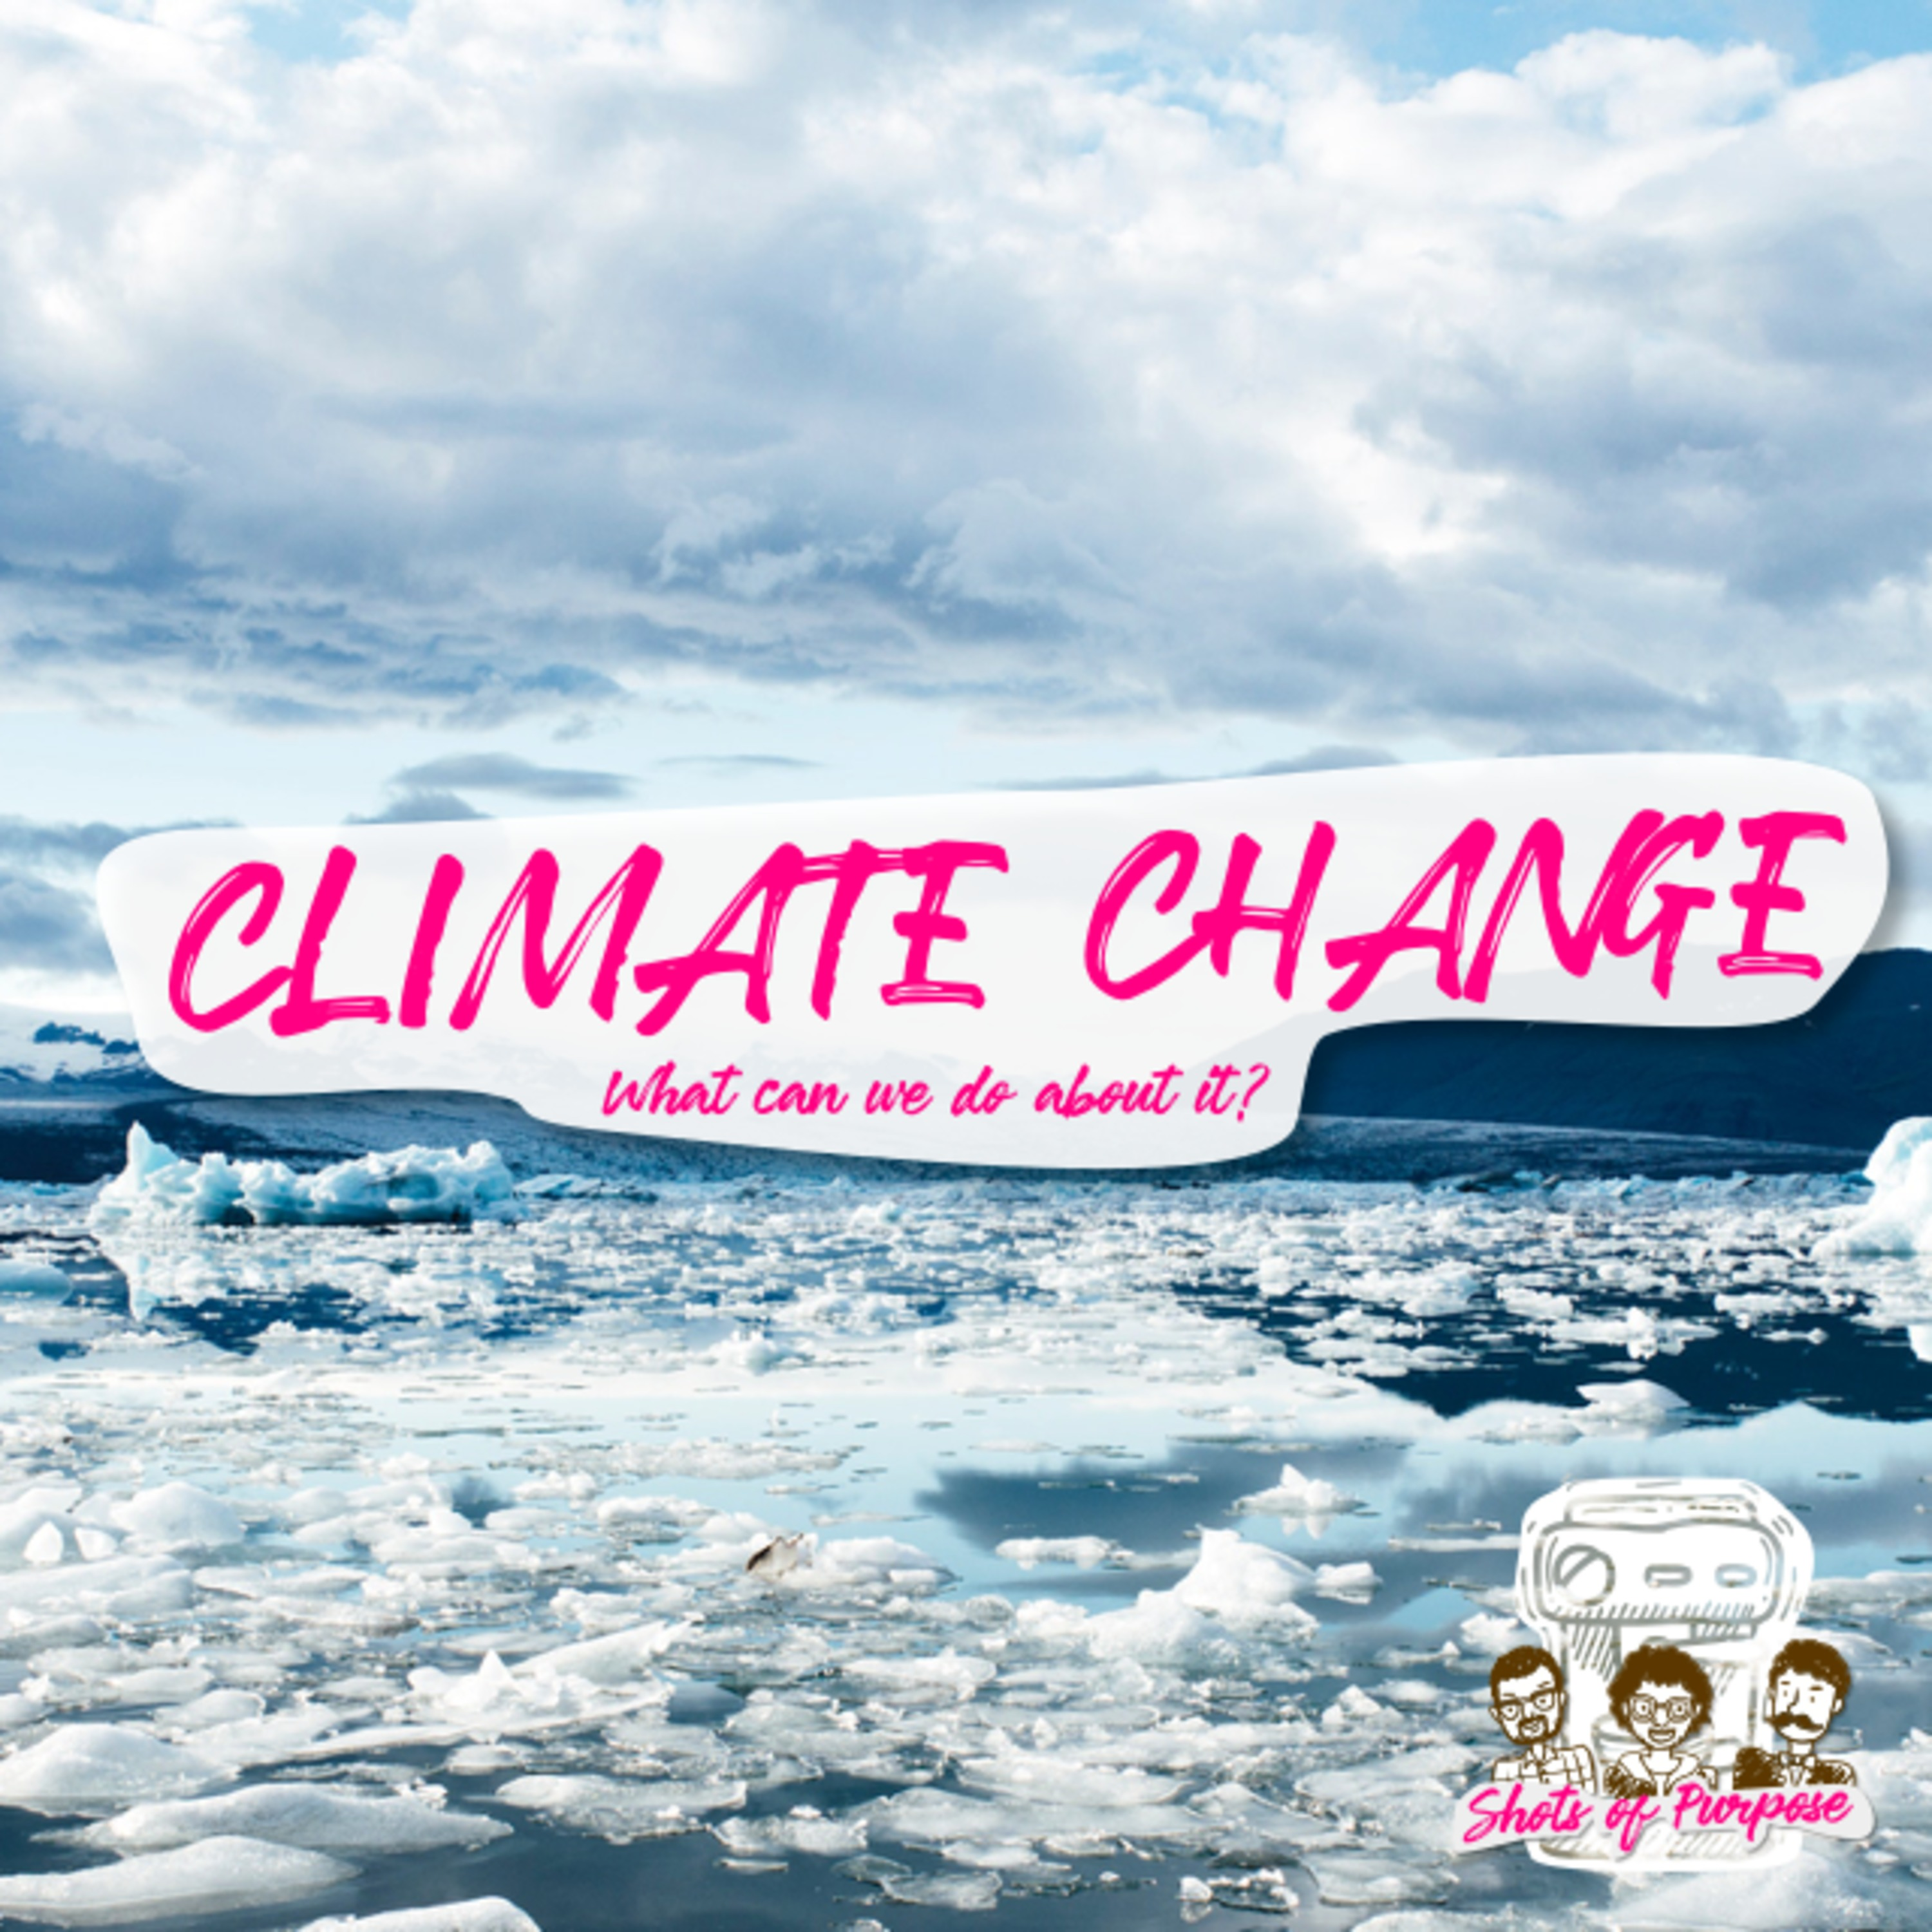 Climate change, what can we do about it?